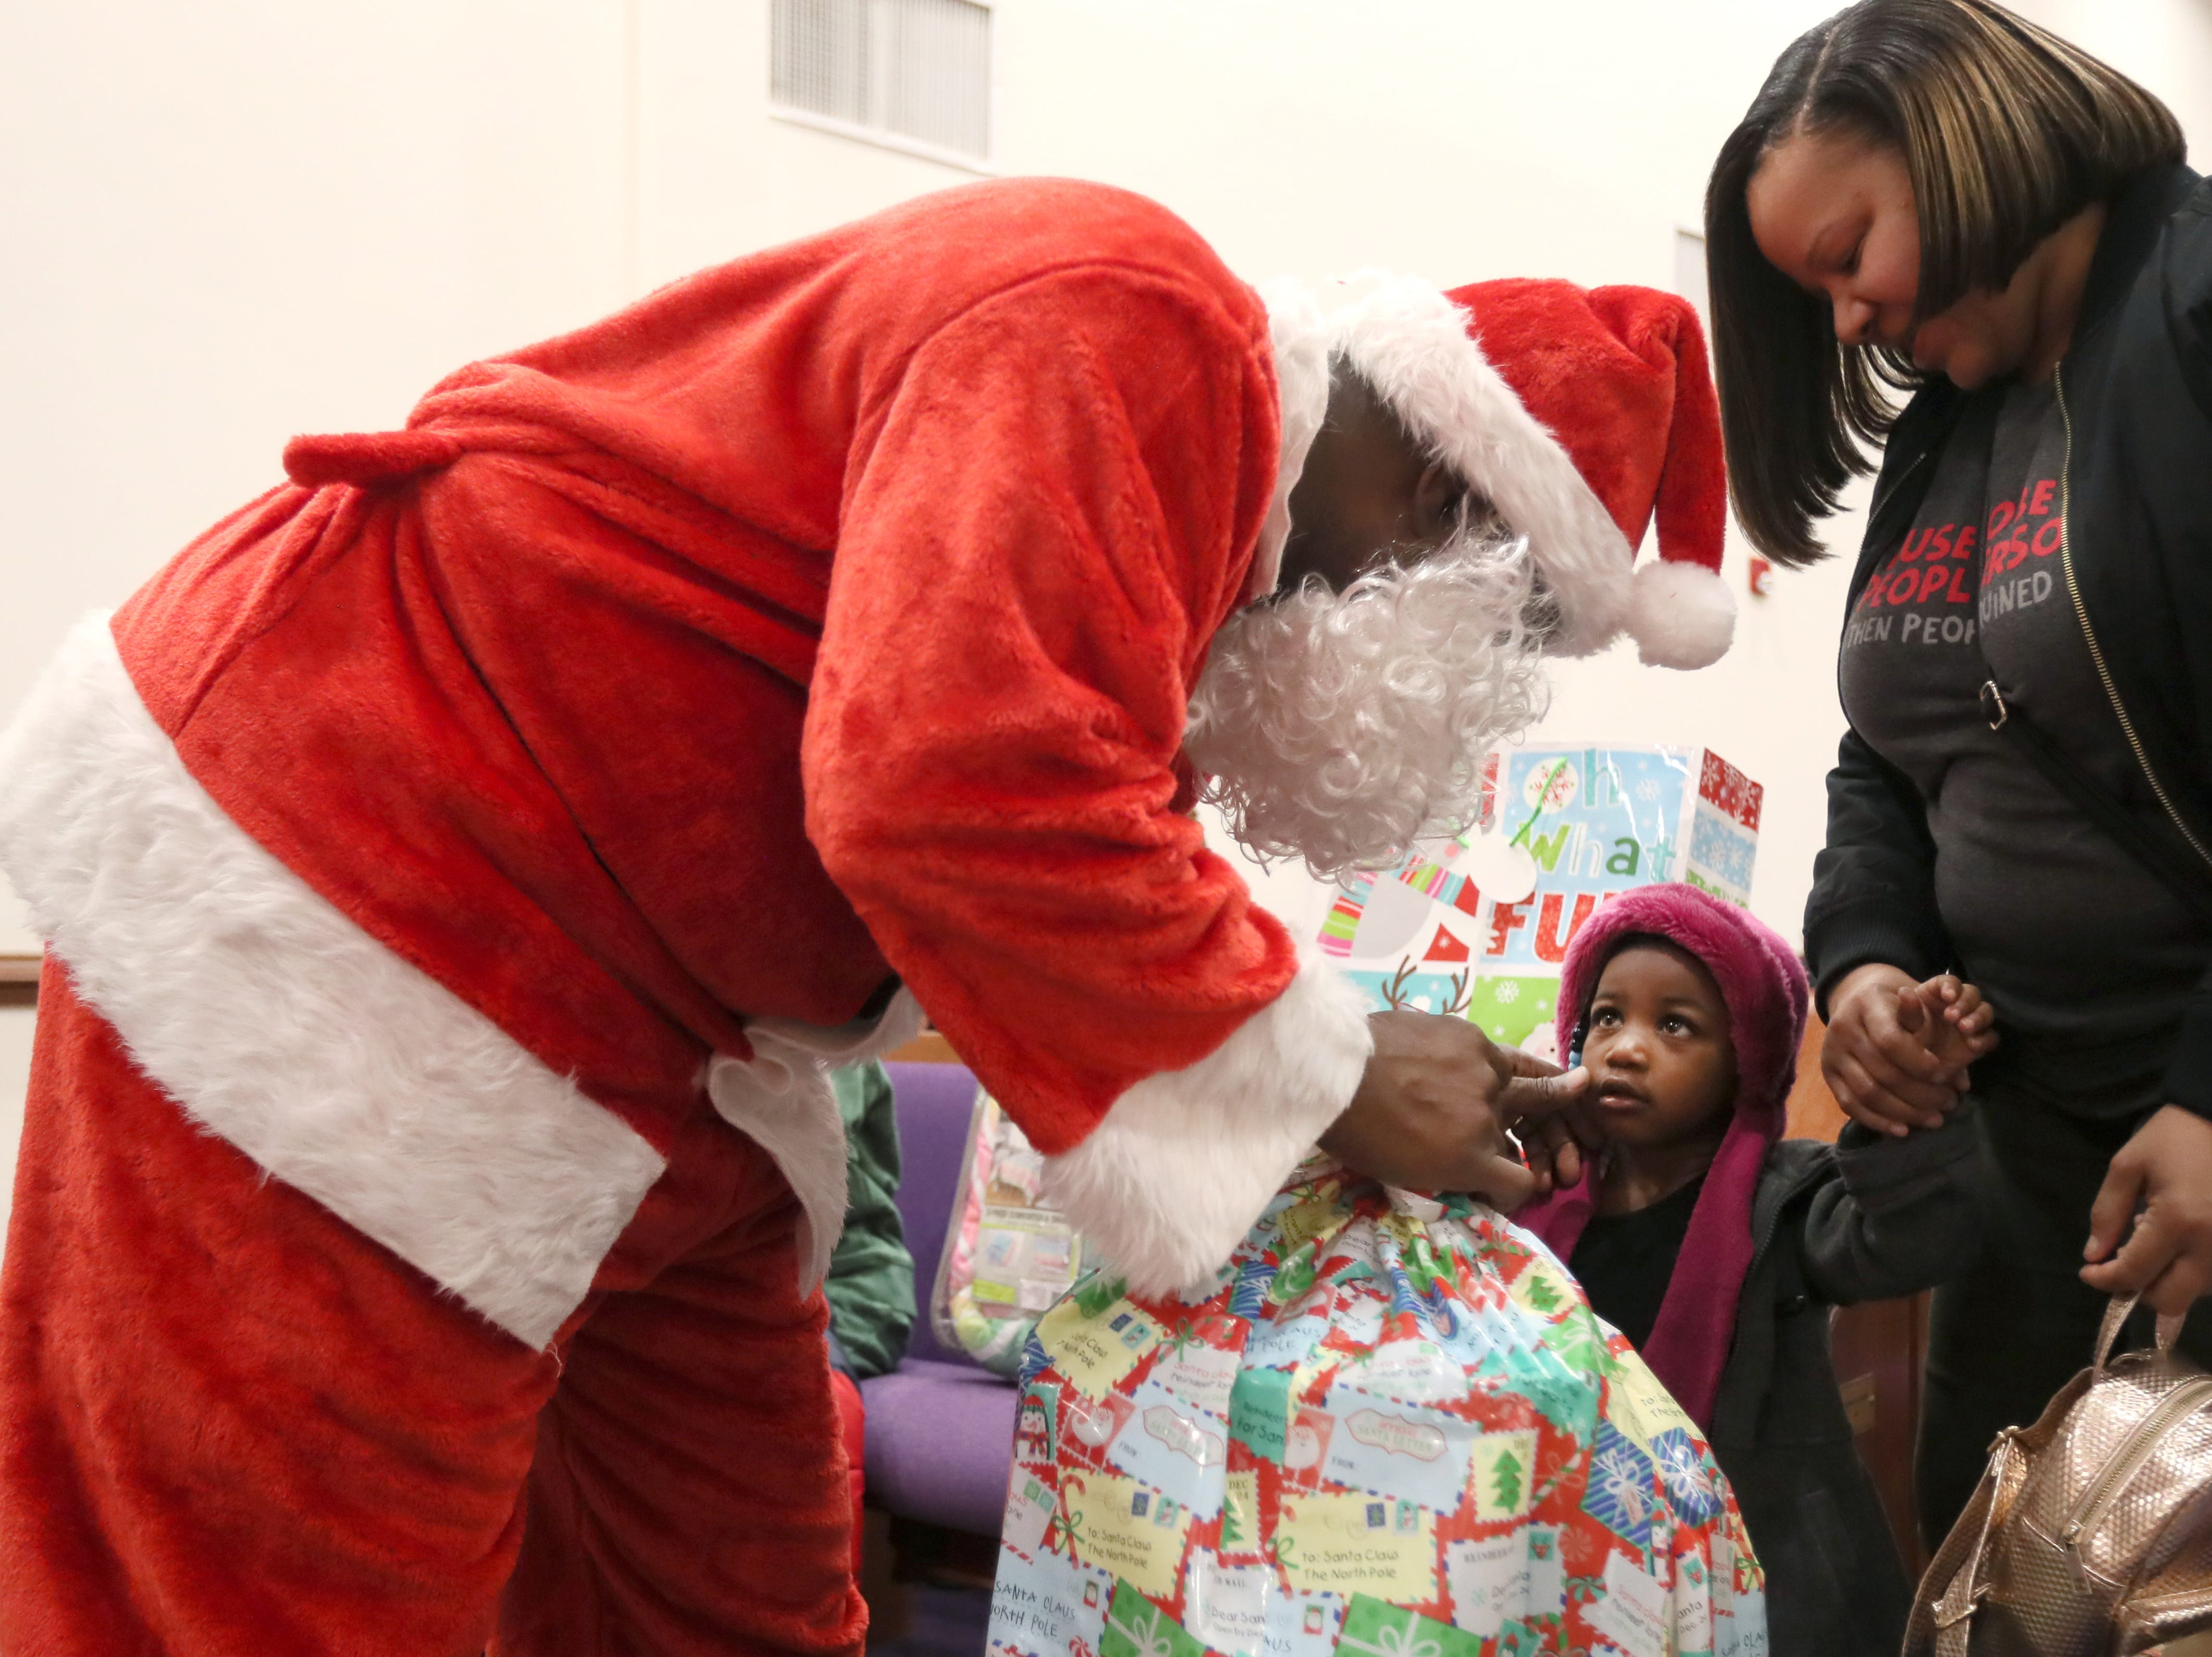 Officer Keith Payne, dressed as Santa, pinches the cheek of Miaya Carlock, 2, with her grandmother Mary Beasley by her side as the MPD's Community Outreach Program brings Christmas cheer to dozens of families at Grace Missionary Baptist Church on Thursday, Dec. 20, 2018.